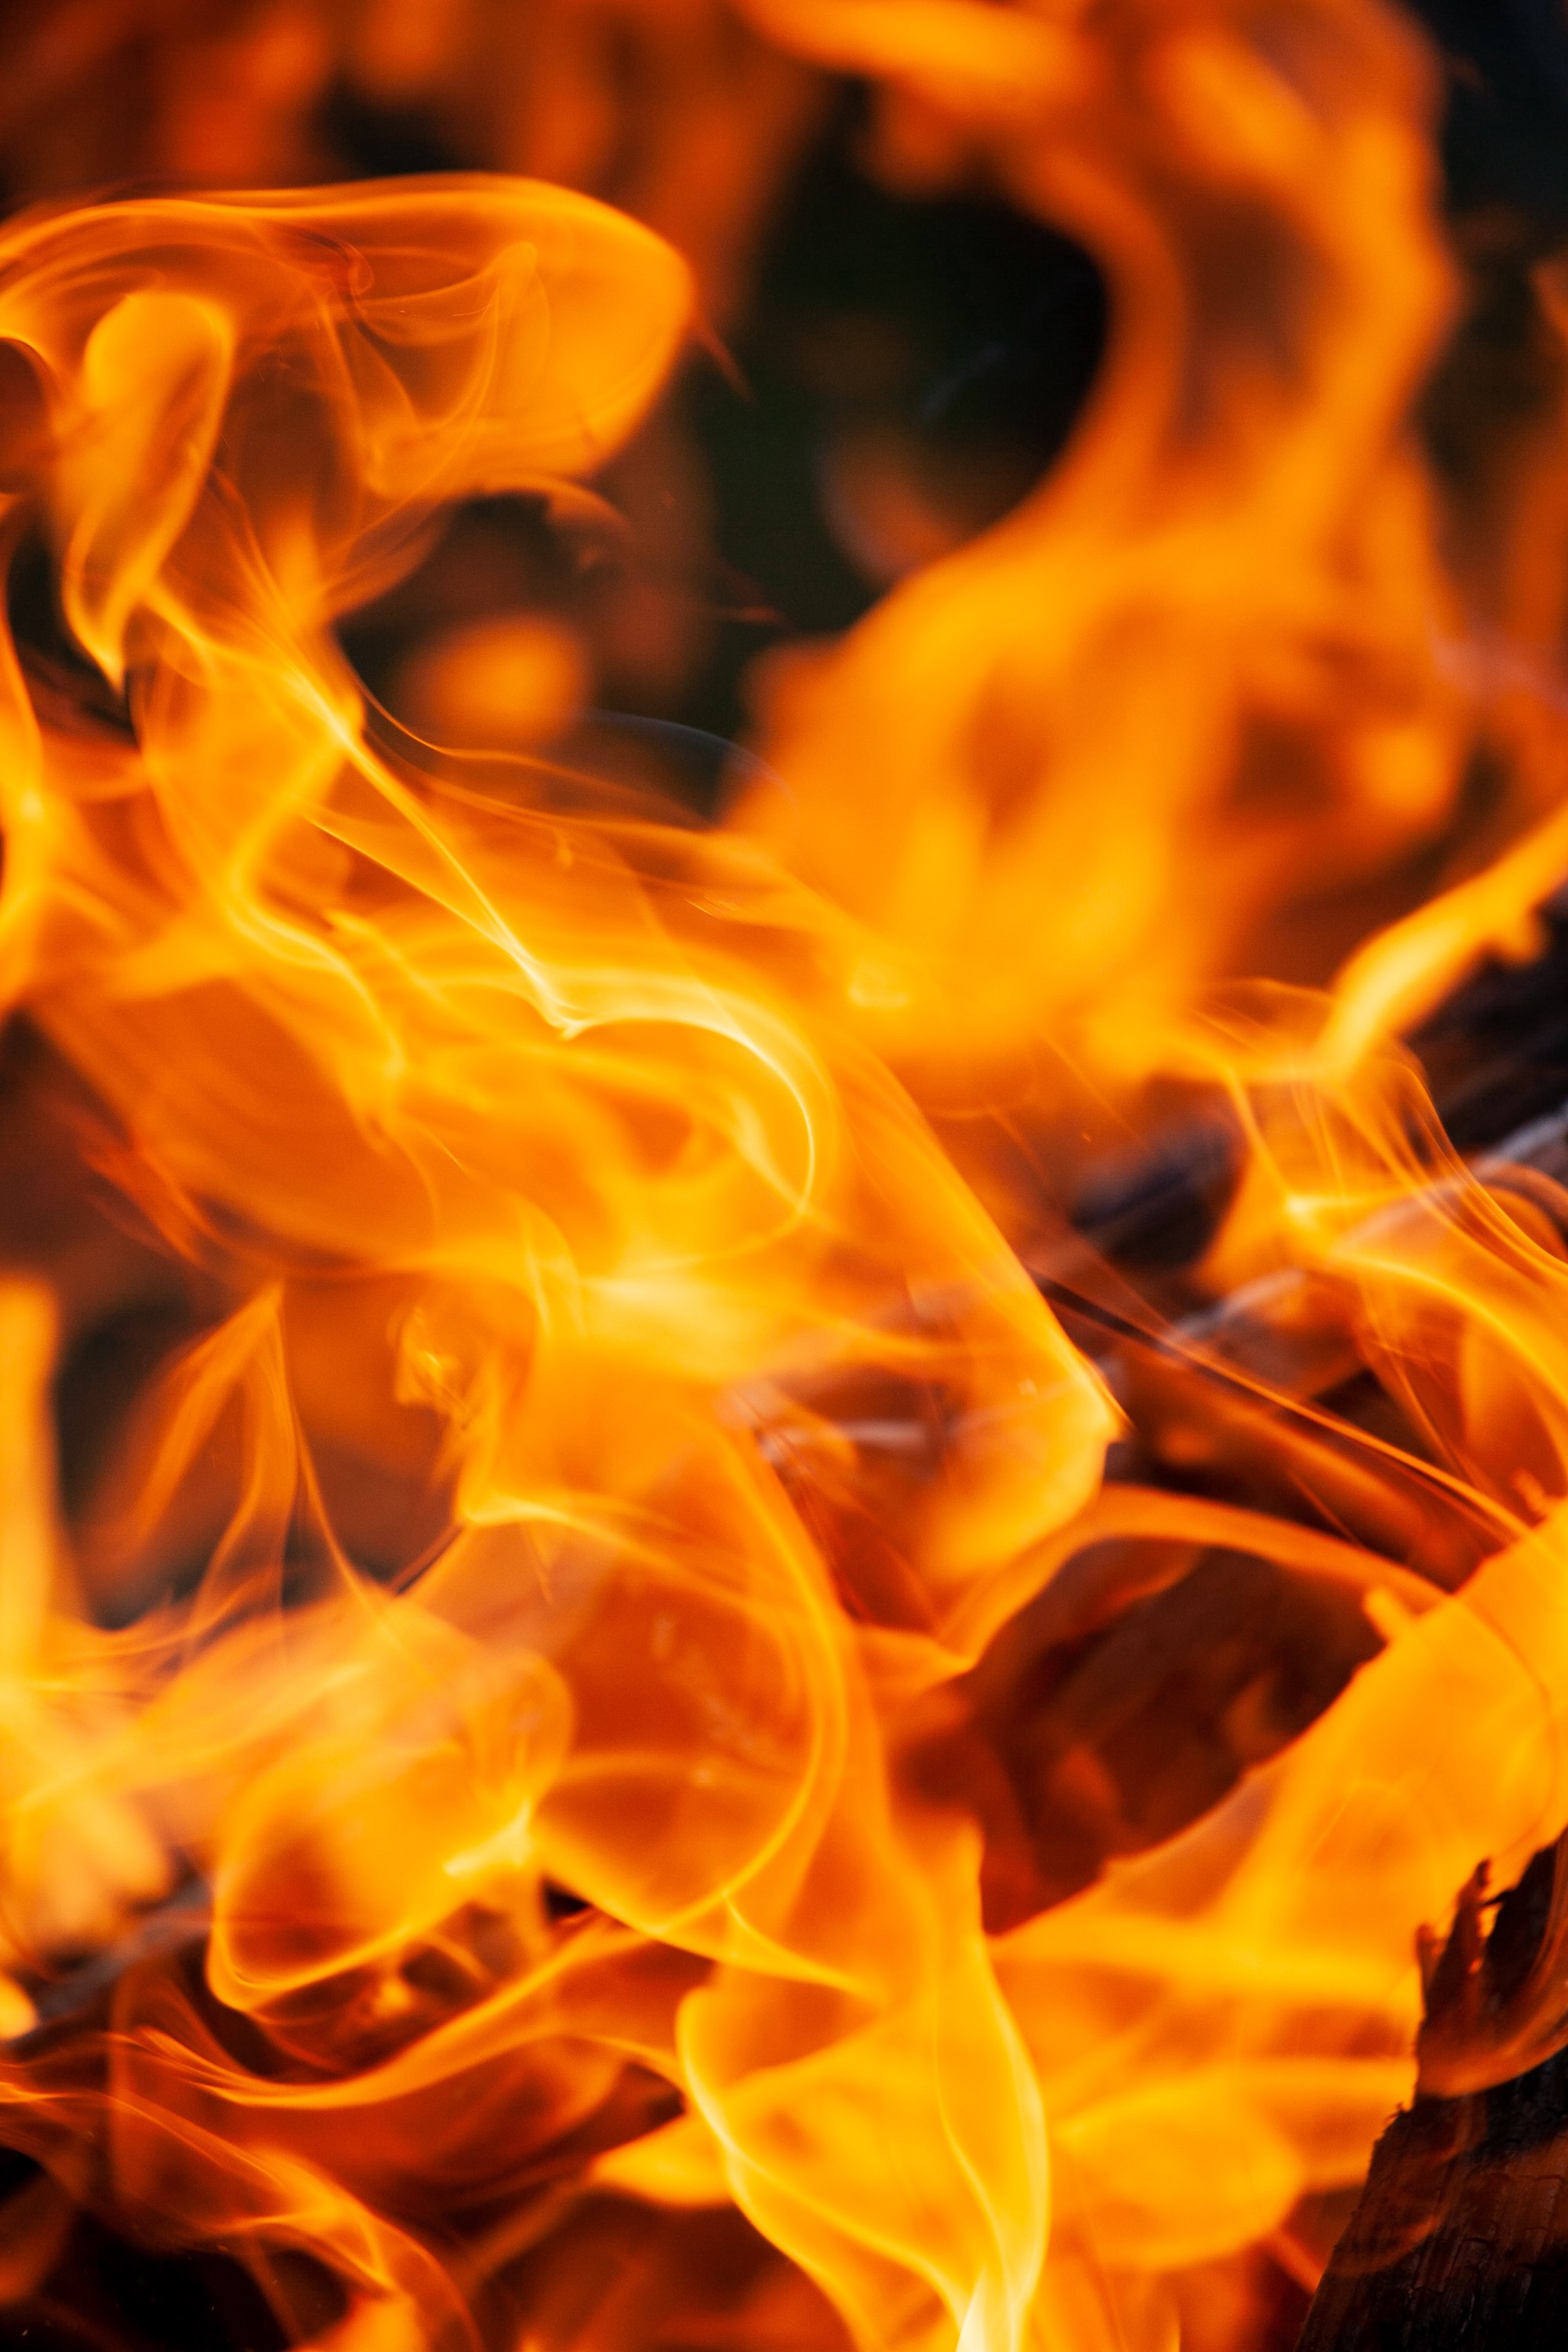 A close up picture of flames